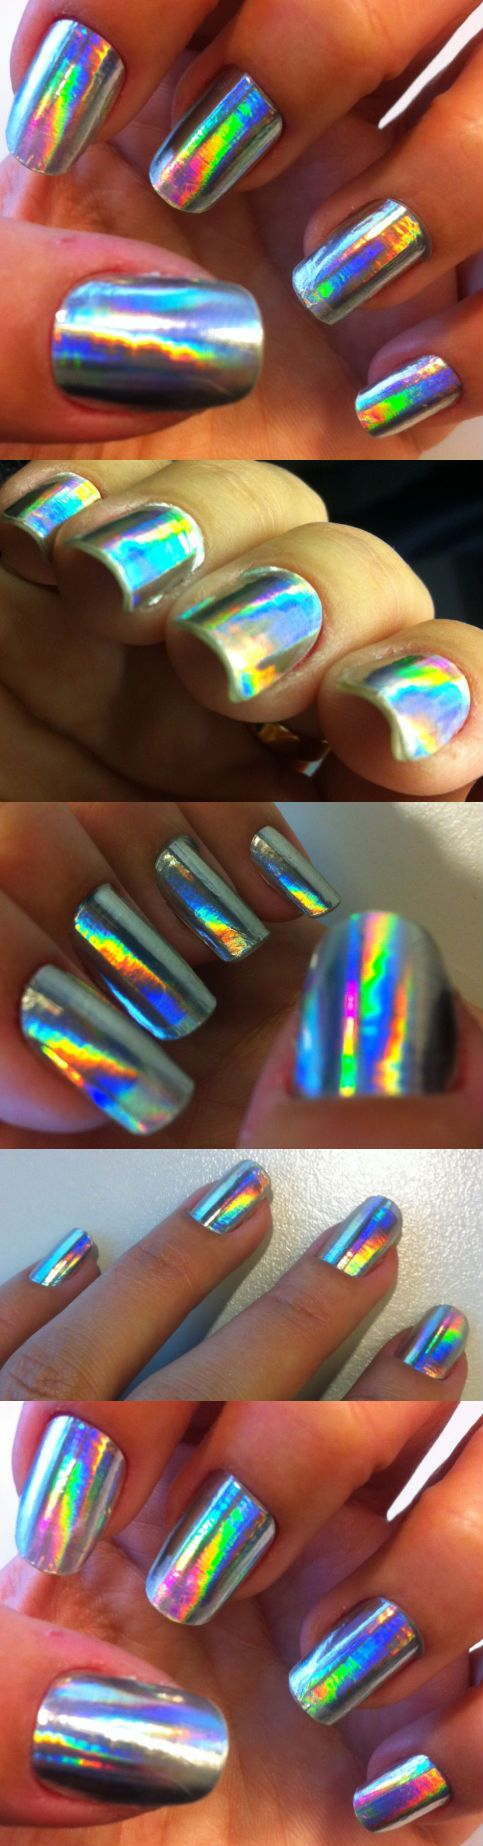 338 best nail madness. images on Pinterest | Nail scissors, Beleza ...